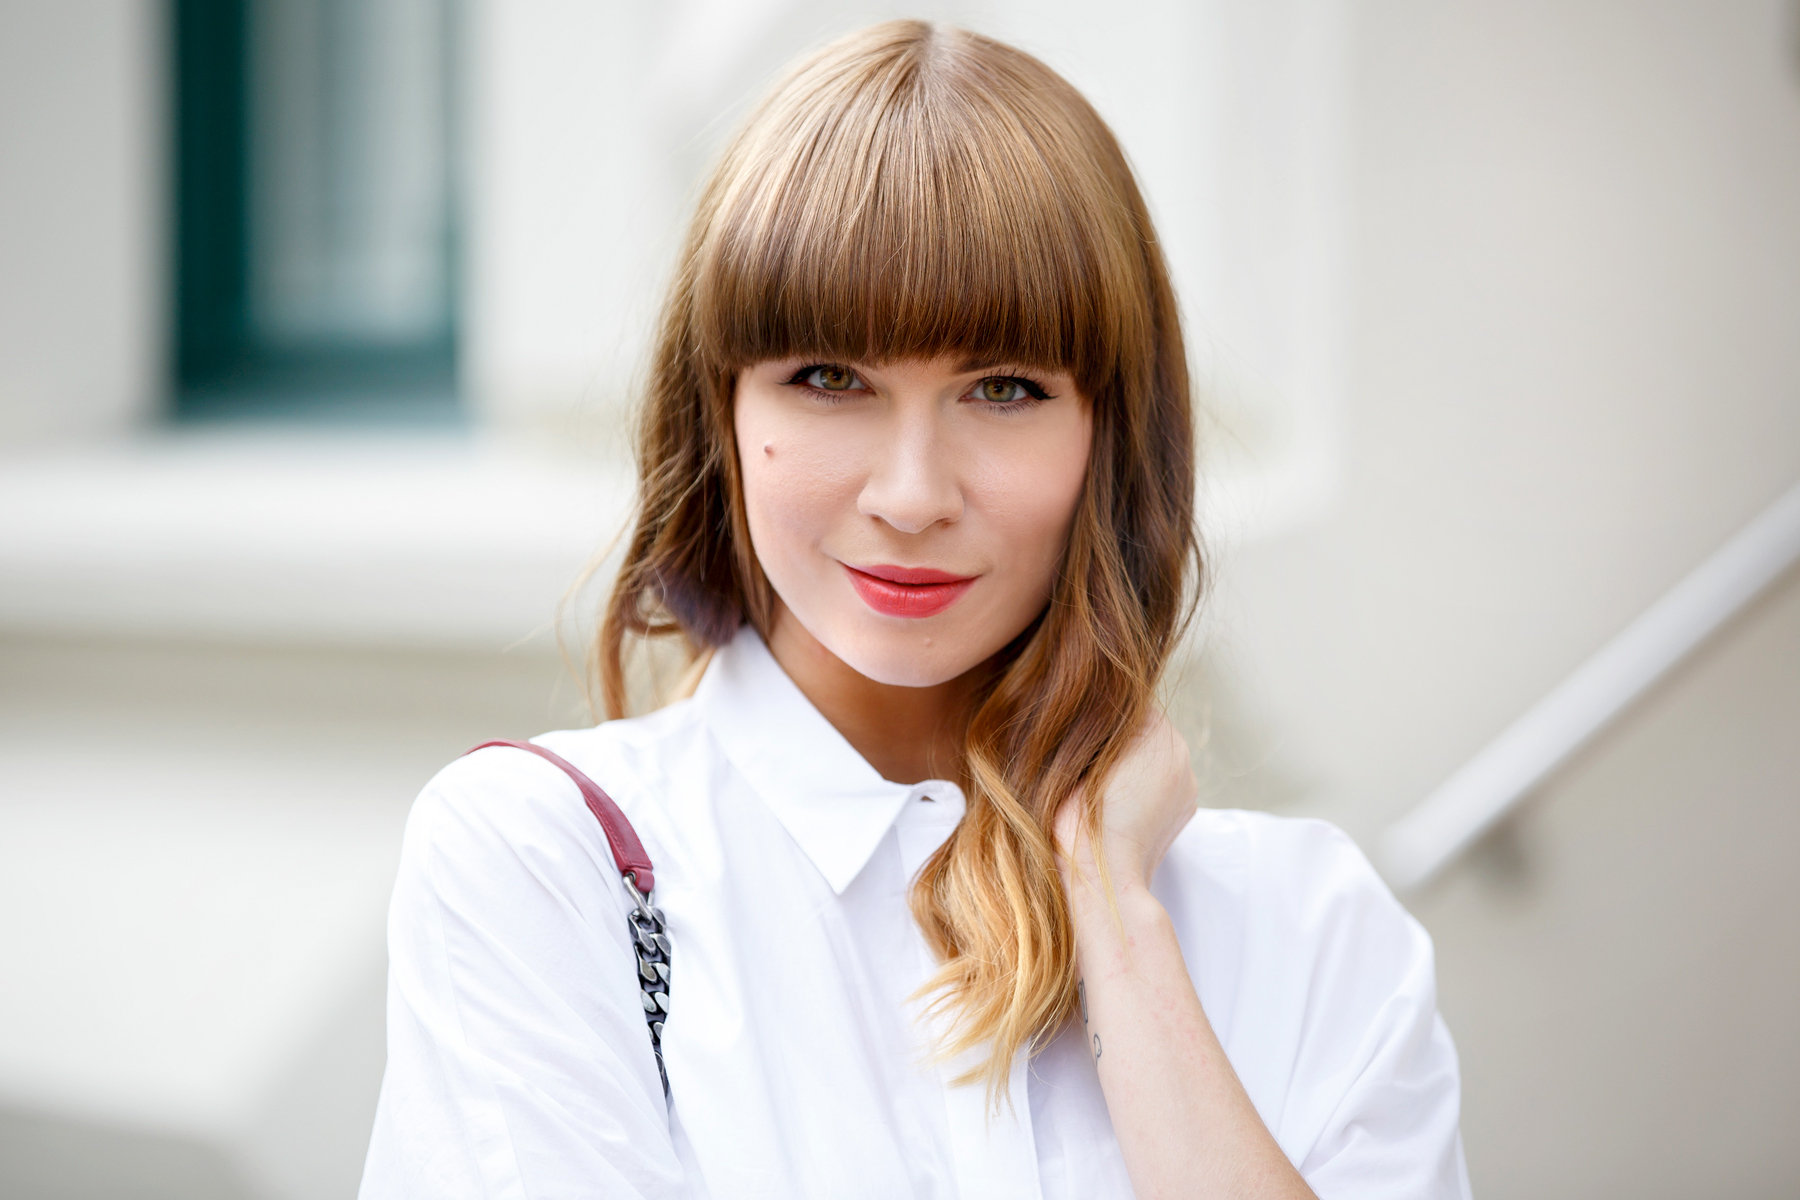 bike bicycle reserved georgia may jagger maritime ysl monogram bag red blue white outfit ootd look lookbook brunette bangs french parisienne parisian paris düsseldorf cute girly styling fashionblogger ricarda schernus cats & dogs blog 1